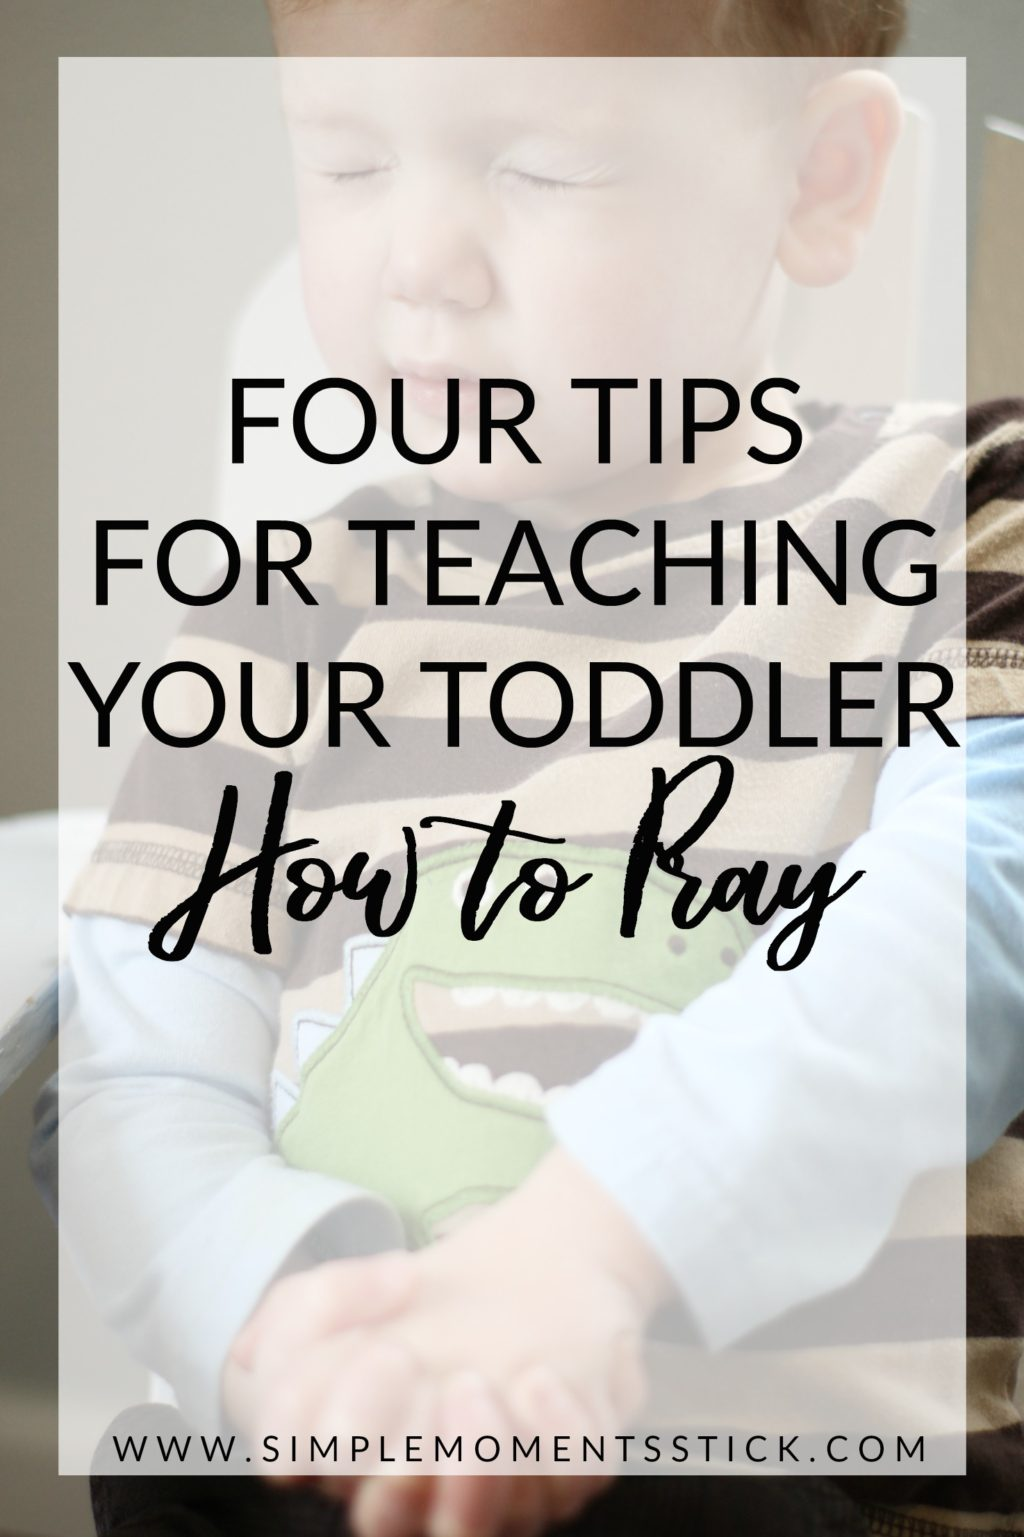 Teaching your child how to pray doesn't have to be hard! Just like we each learned how to pray slowly, our kids learn that way too! Find out how to teach your toddler to pray the non-overwhelming way!